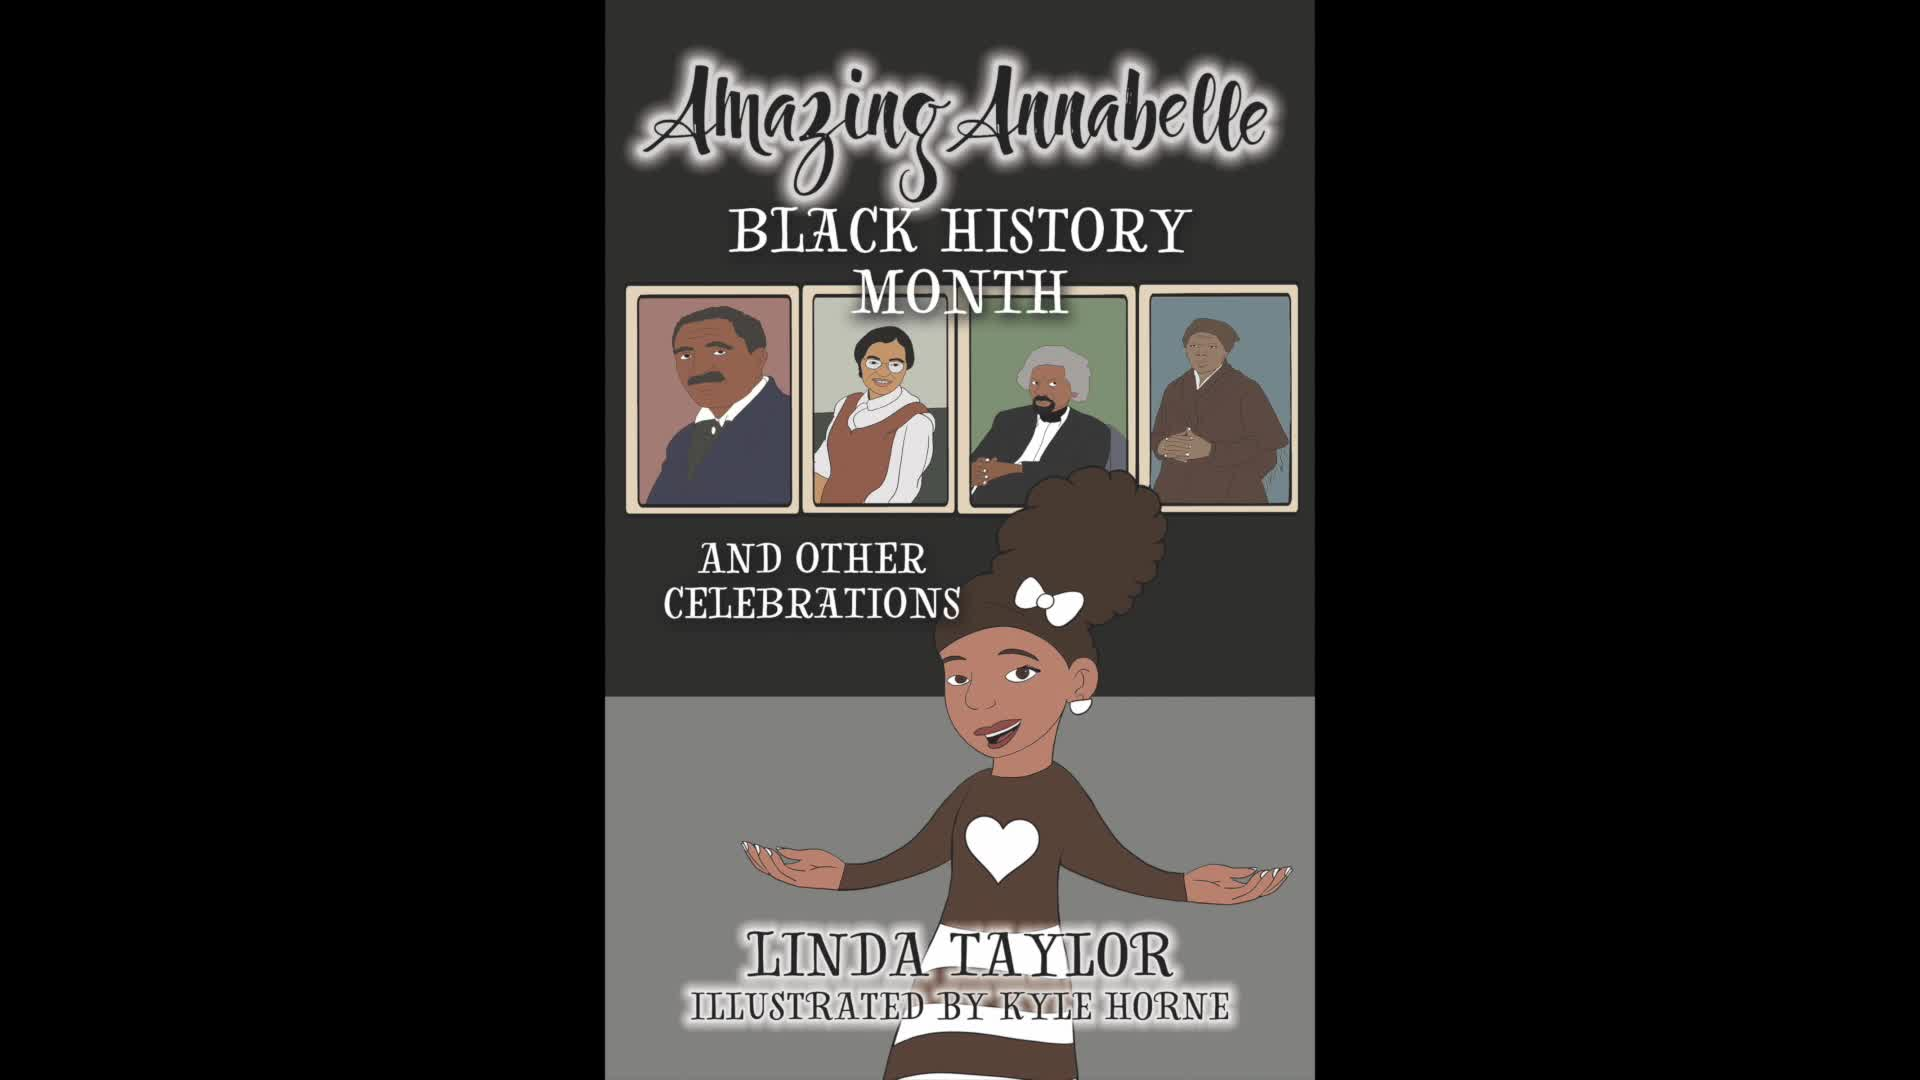 Amazing Annabelle Black History Month Chapter 2